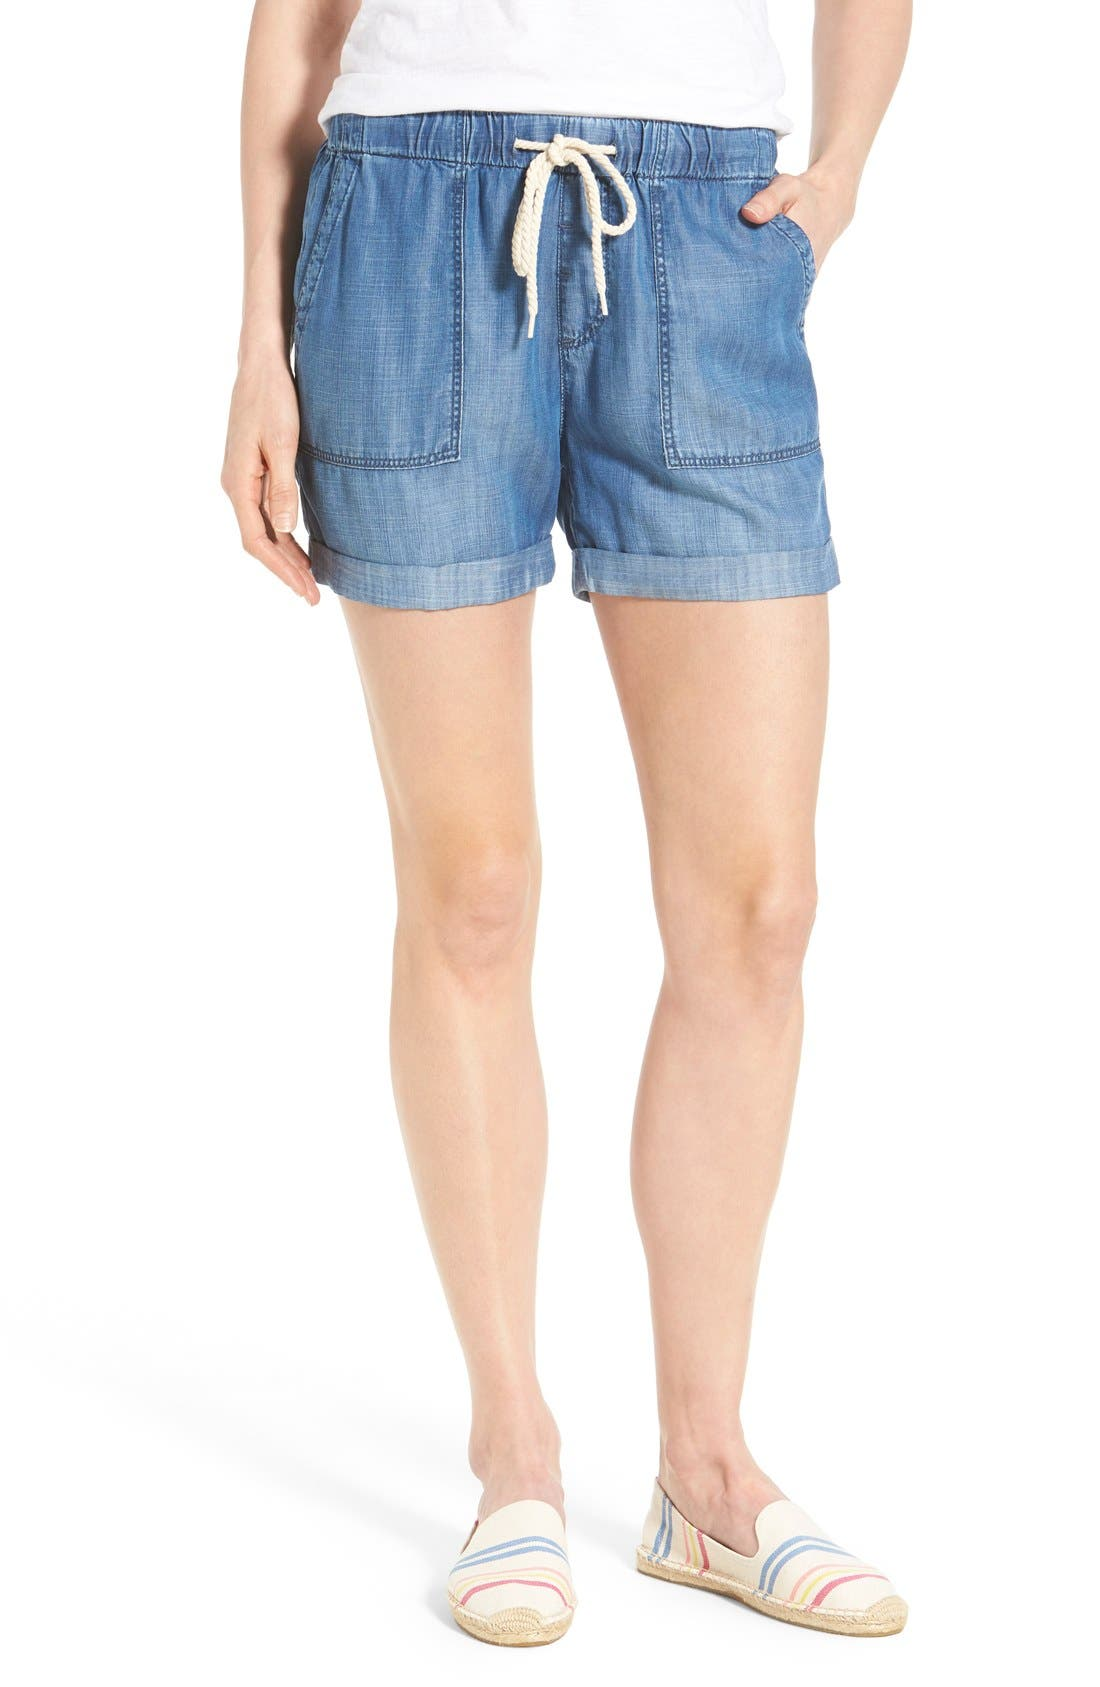 MAVI JEANS 'Laila' Soft Brushed Denim Shorts